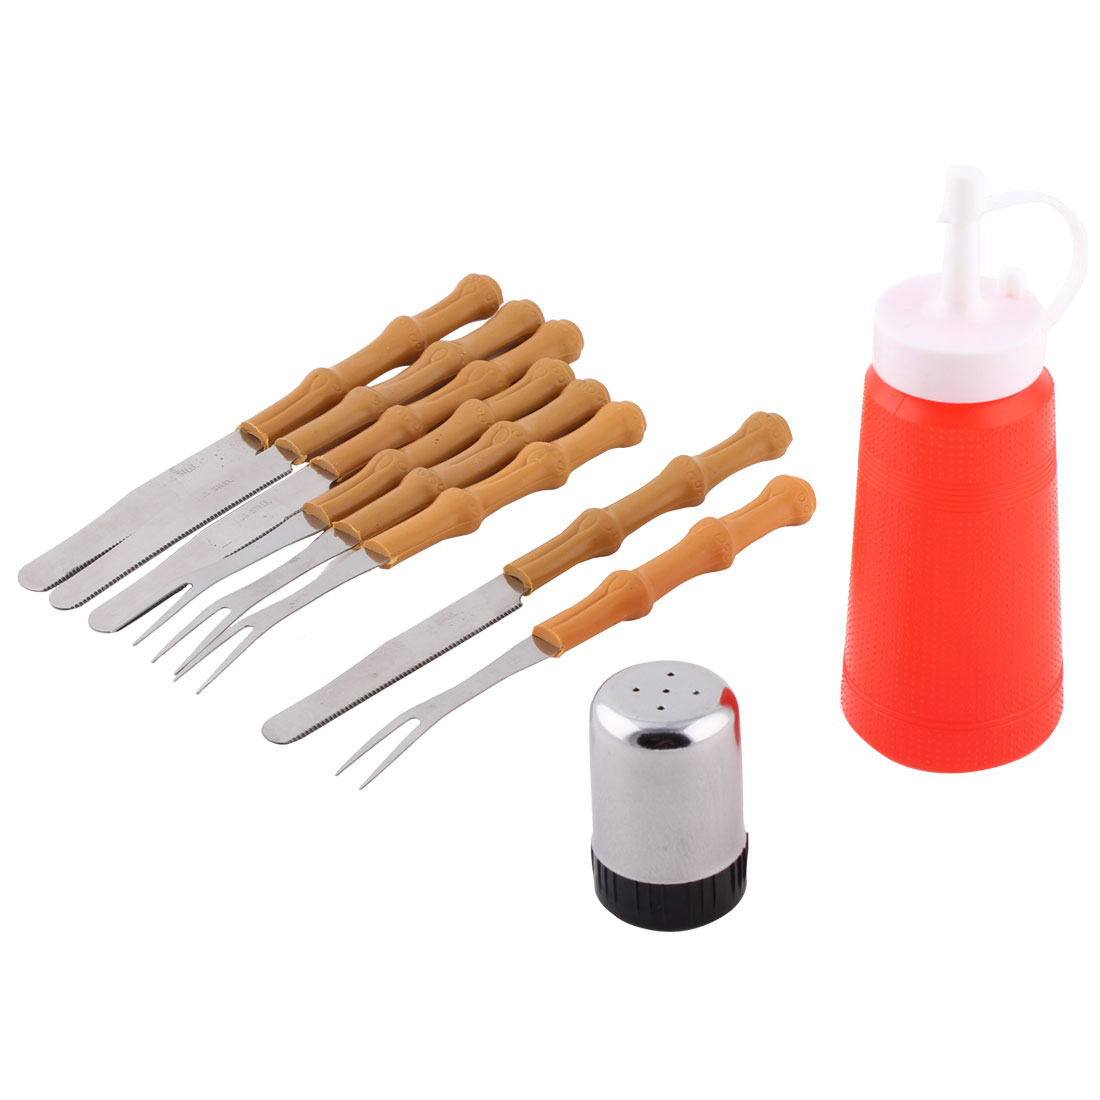 Plastic Handle Stainless Steel Barbecue Kit Cooking Tool BBQ Set 10 in 1